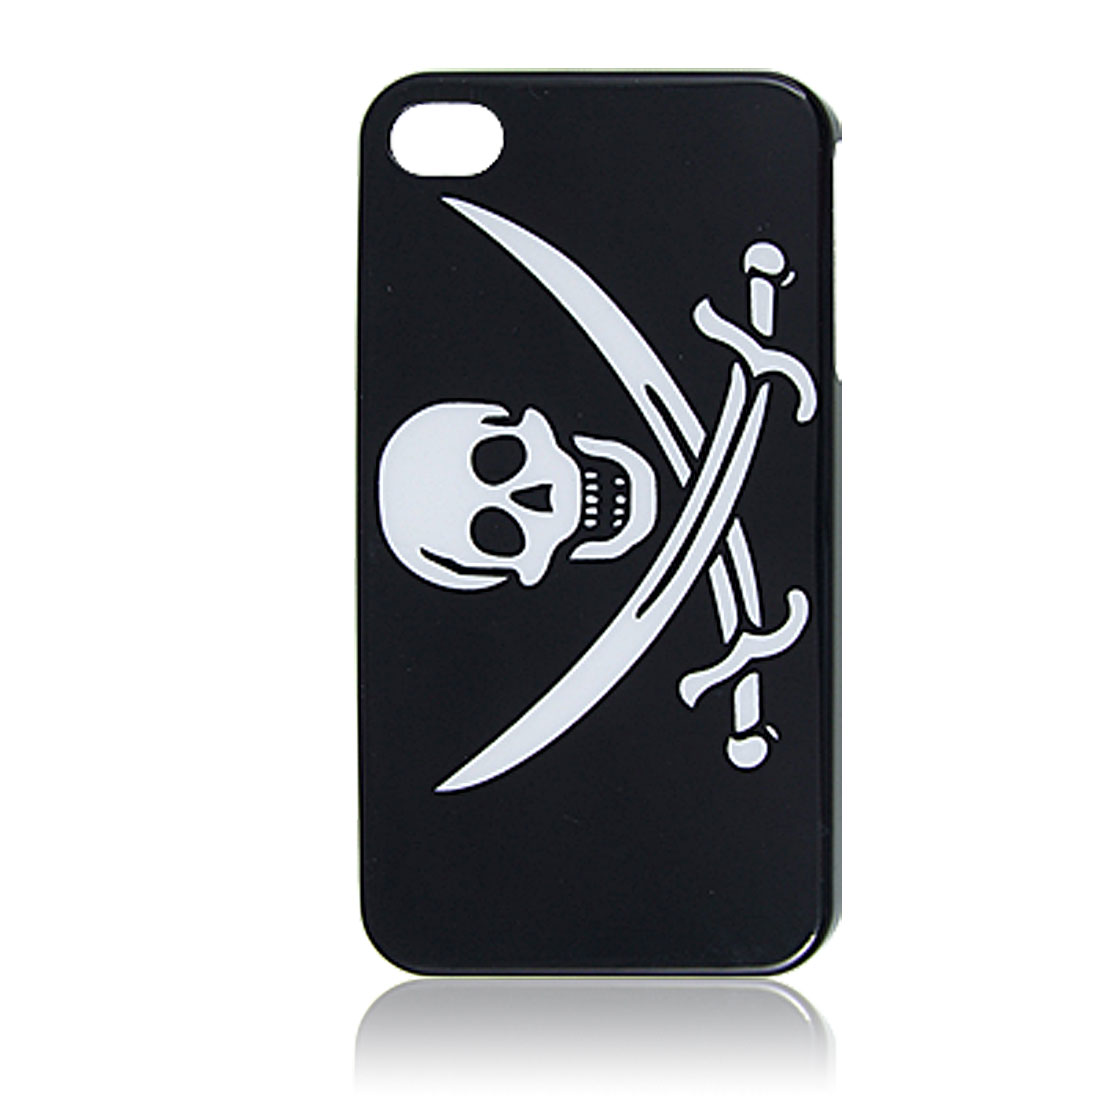 Cross Skull Head Pattern Back Case for iPhone 4 4G